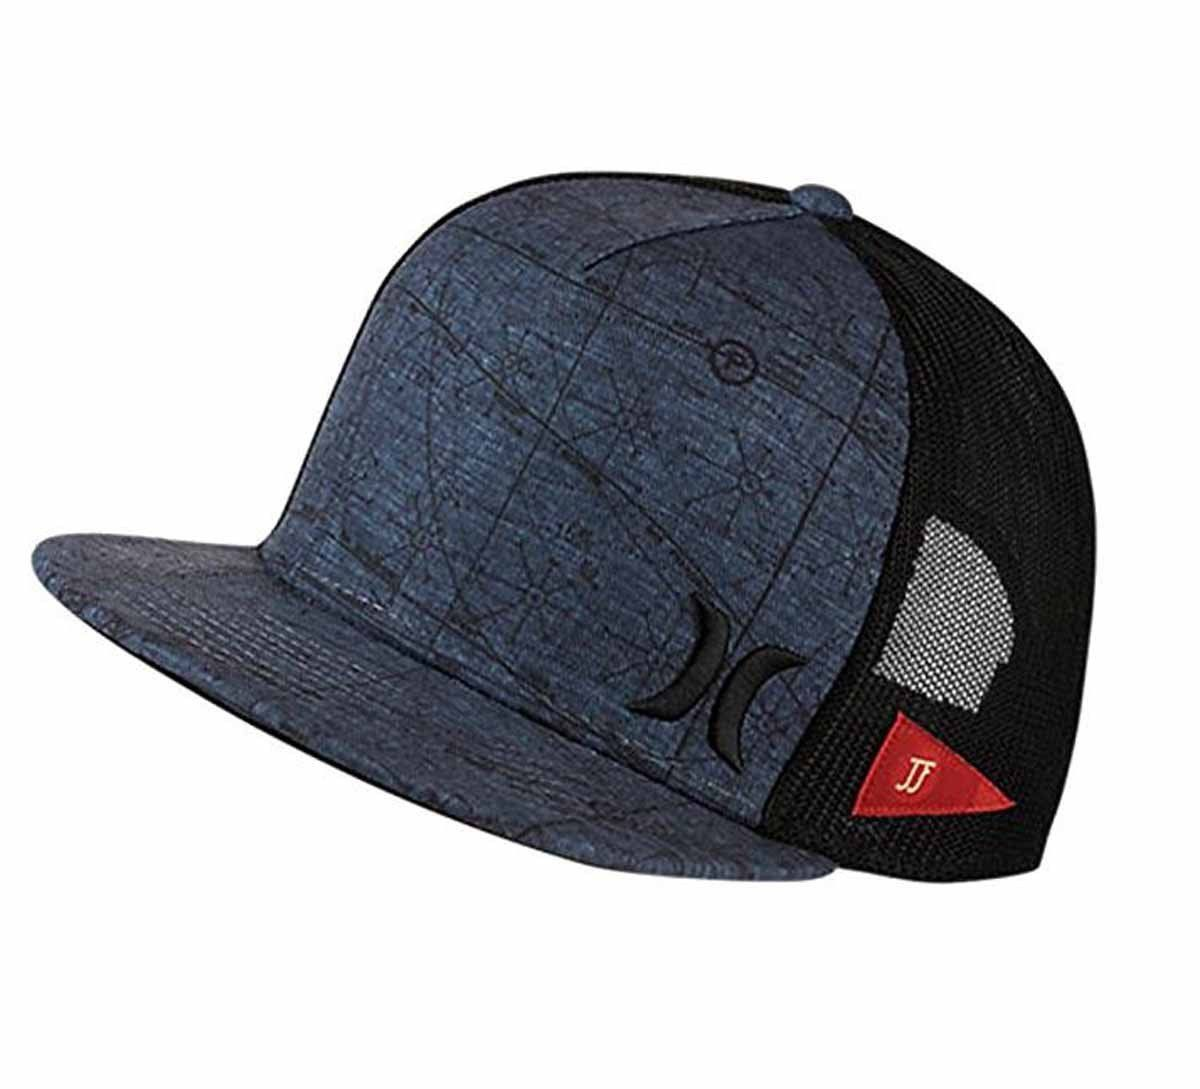 6a49f0255bf Hurley Mens JJF Maps Trucker Adjustable Hat with Nike Aerobill ...